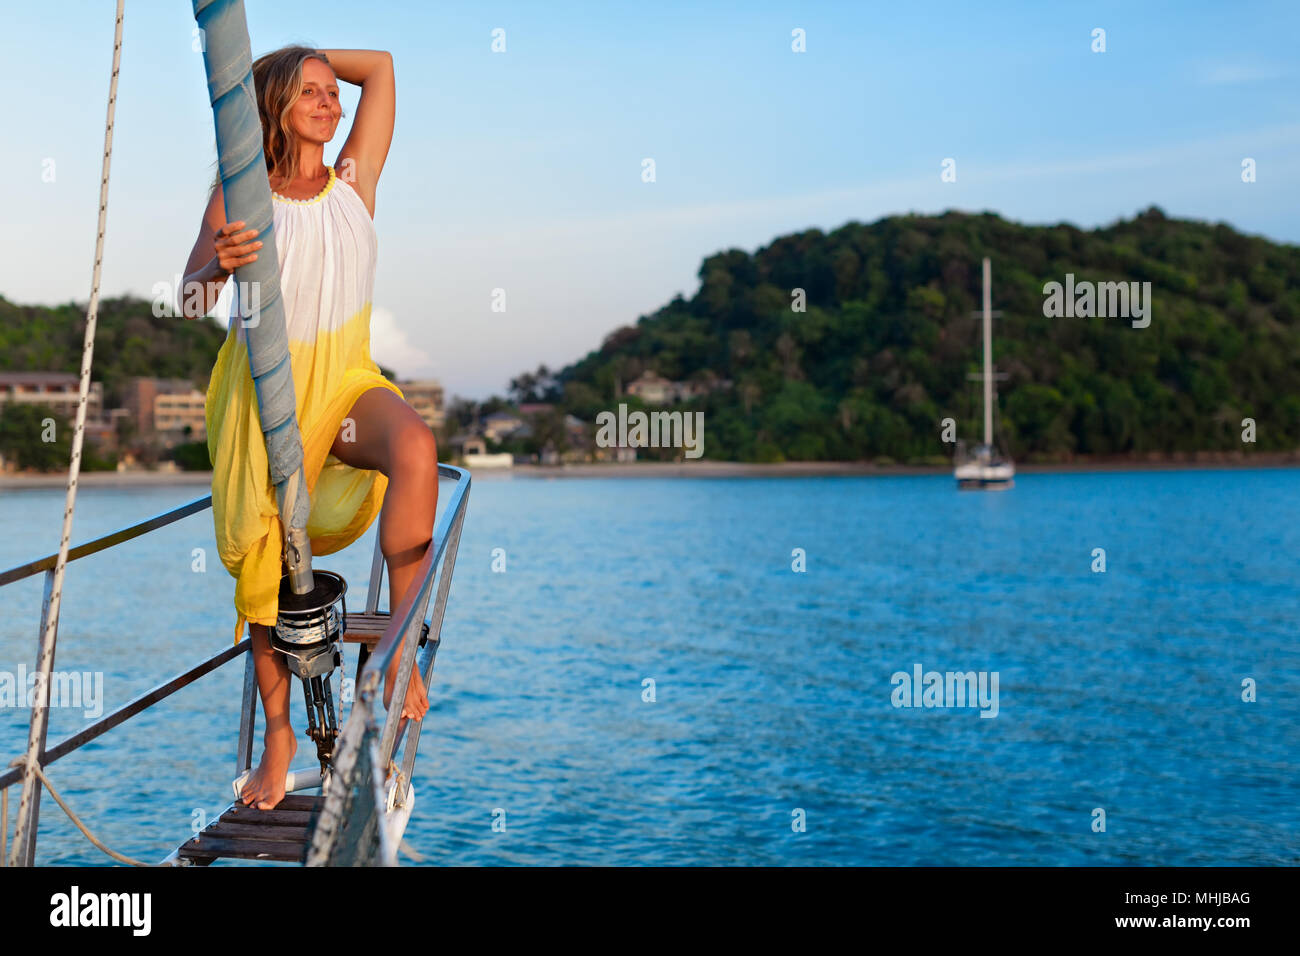 Sailing boat crew on rest. Happy young woman on deck of charter yacht, have fun discovering islands, travel in tropical sea on summer cruise. - Stock Image